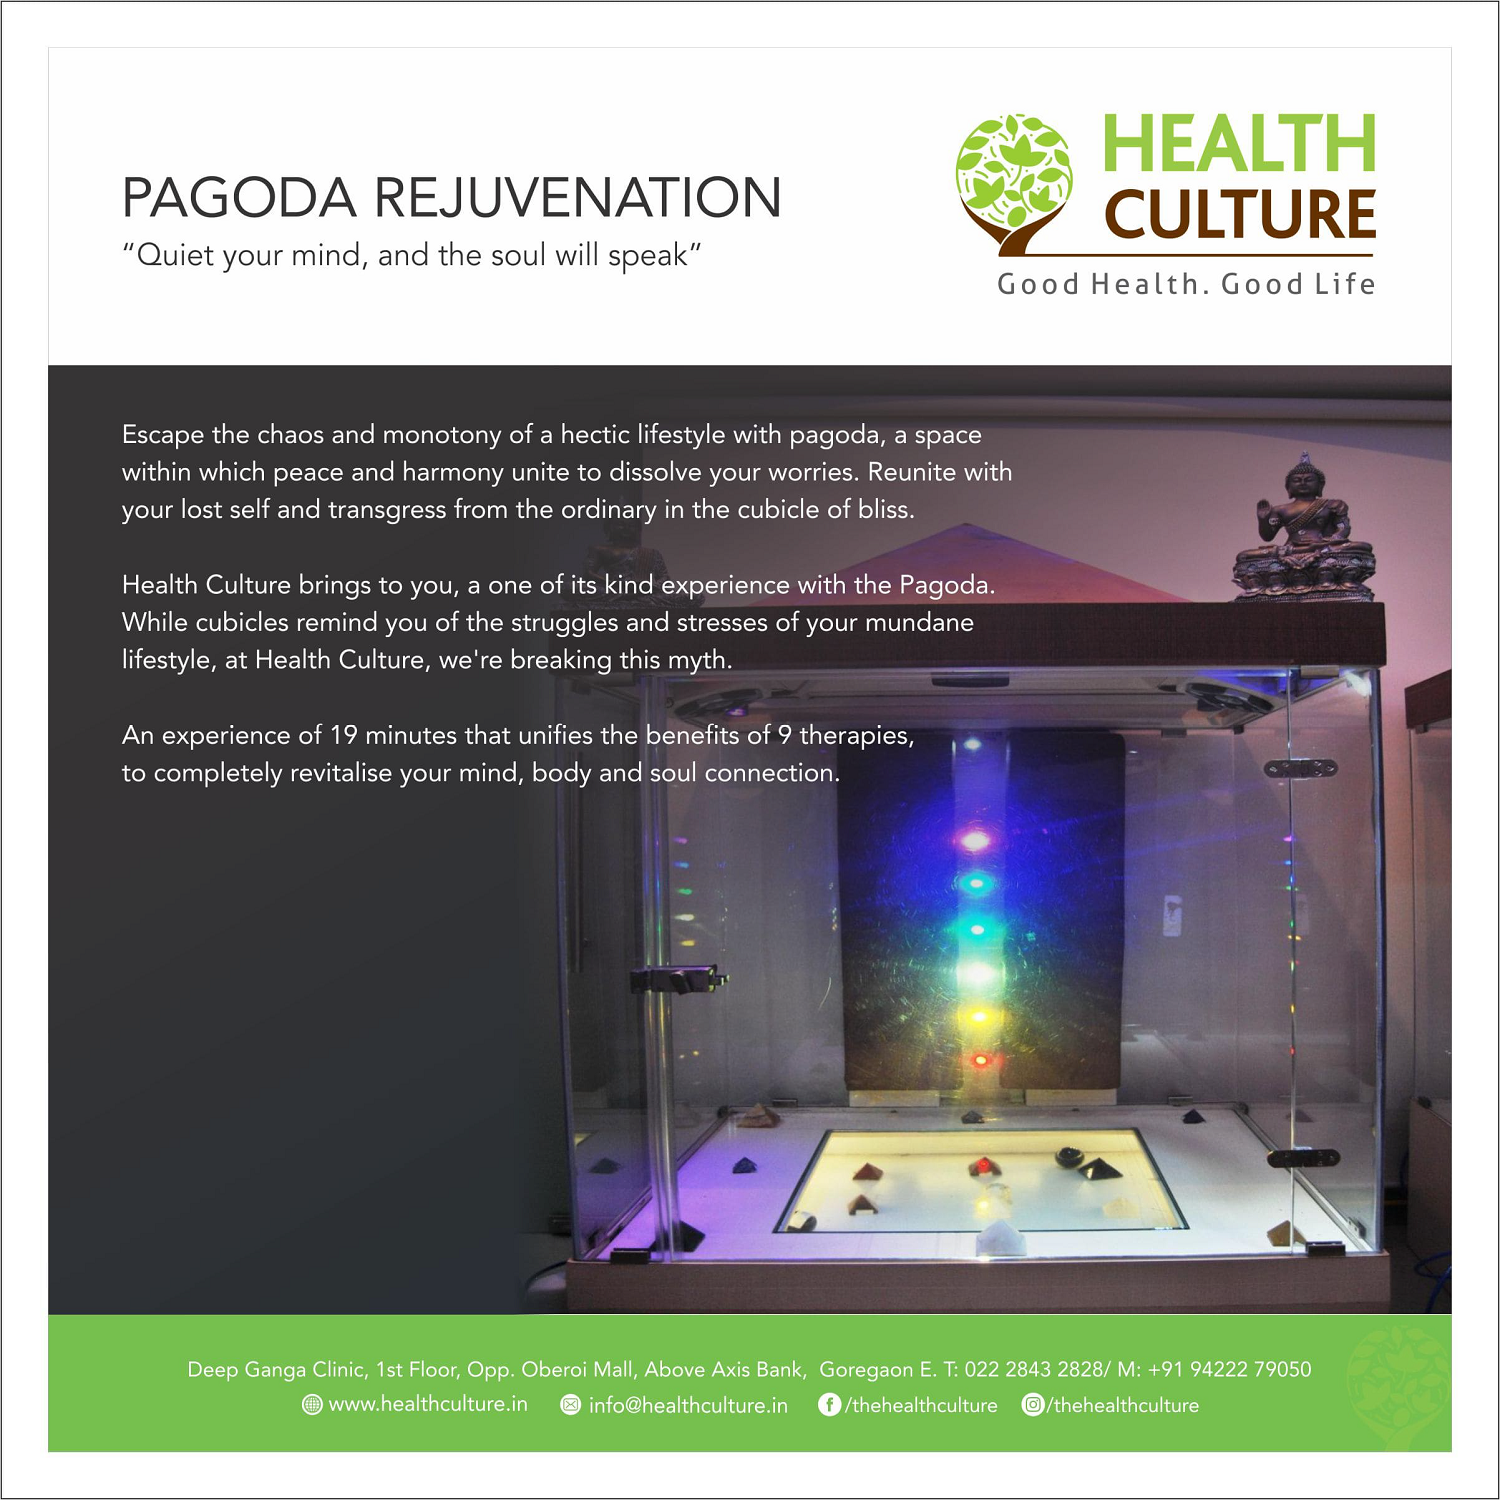 Pagoda Rejuvenation - Health Culture